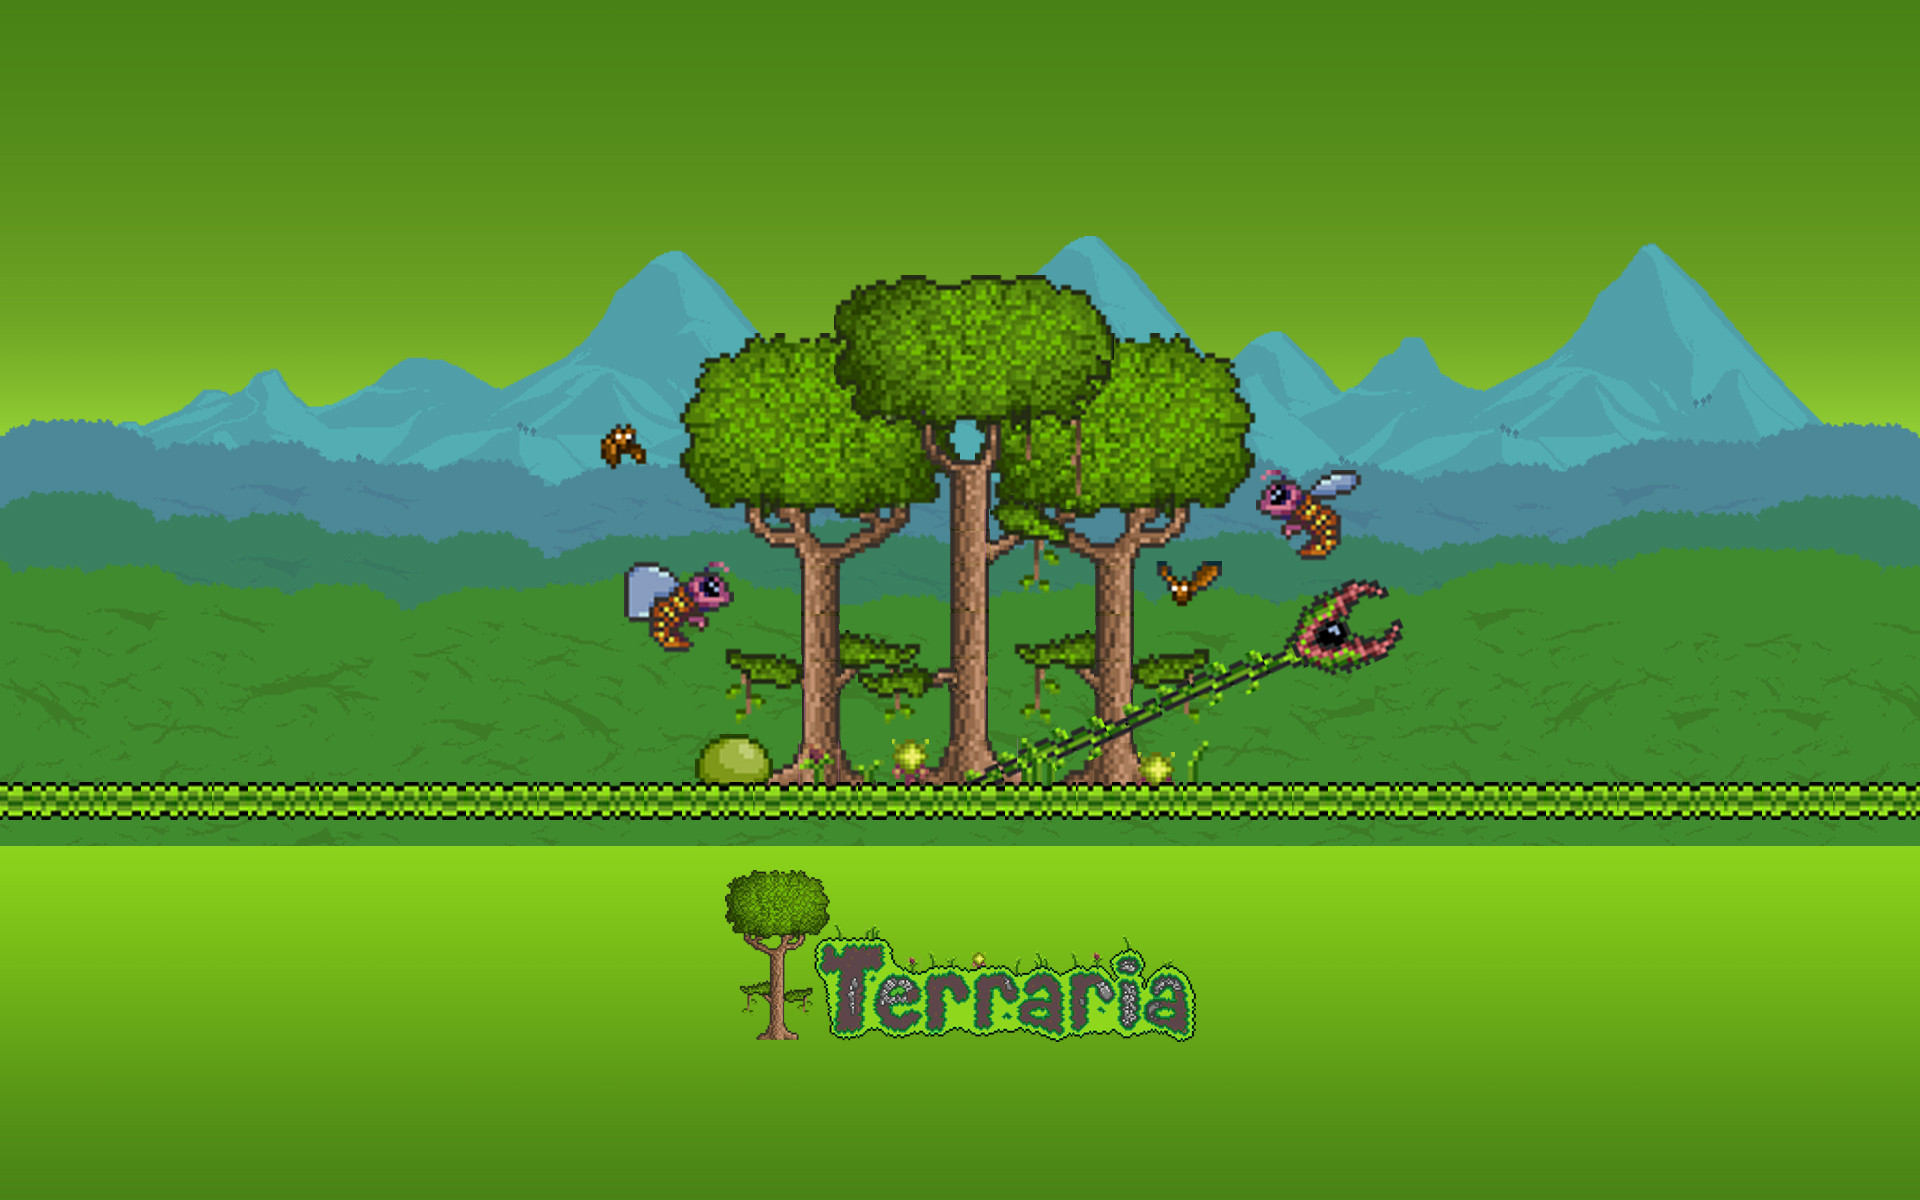 terraria wallpaper A1